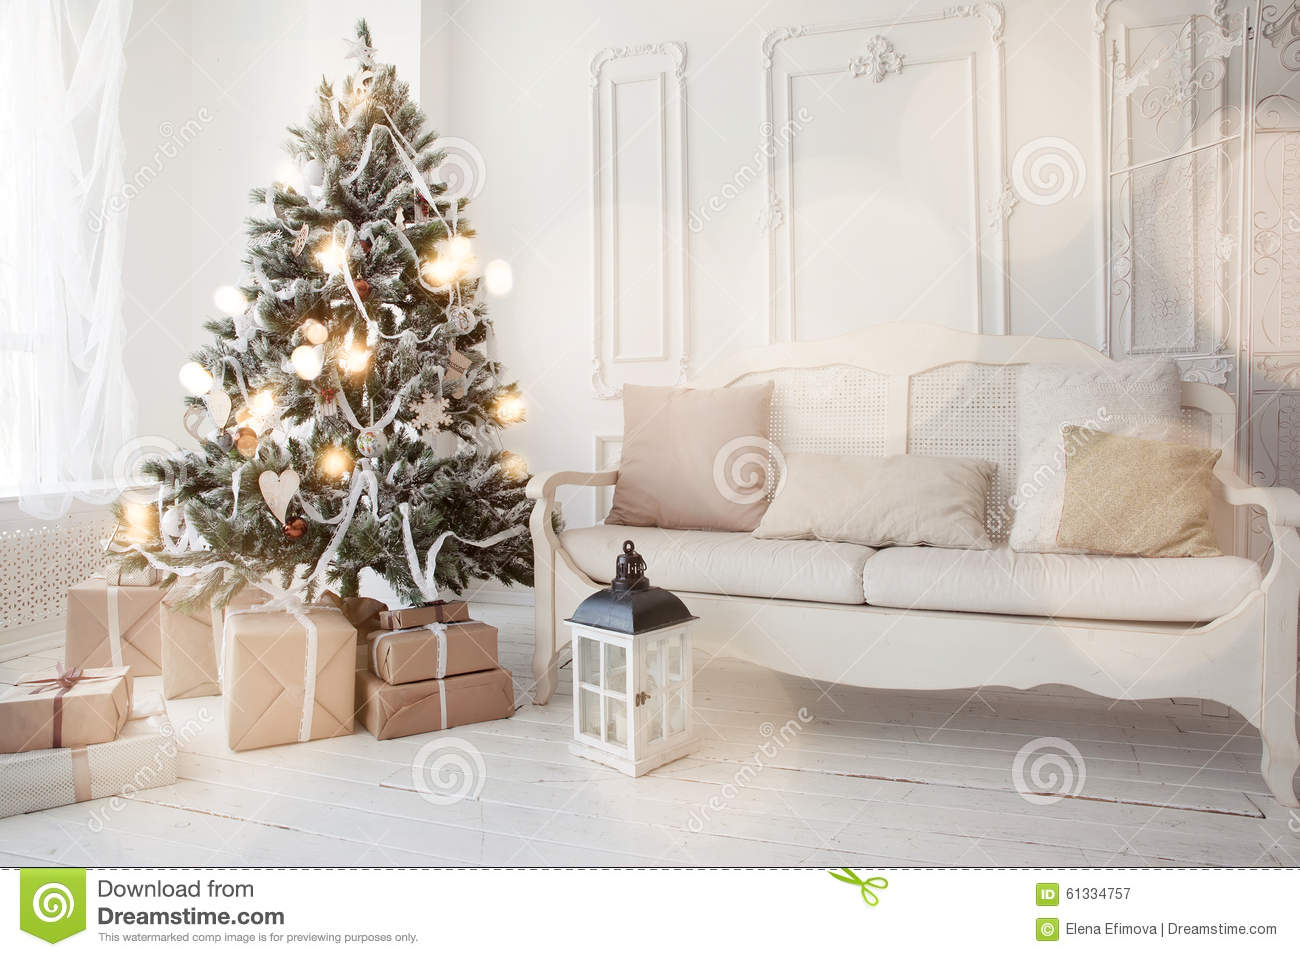 Christmas tree in living room stock image image of - Christmas tree in living room ...